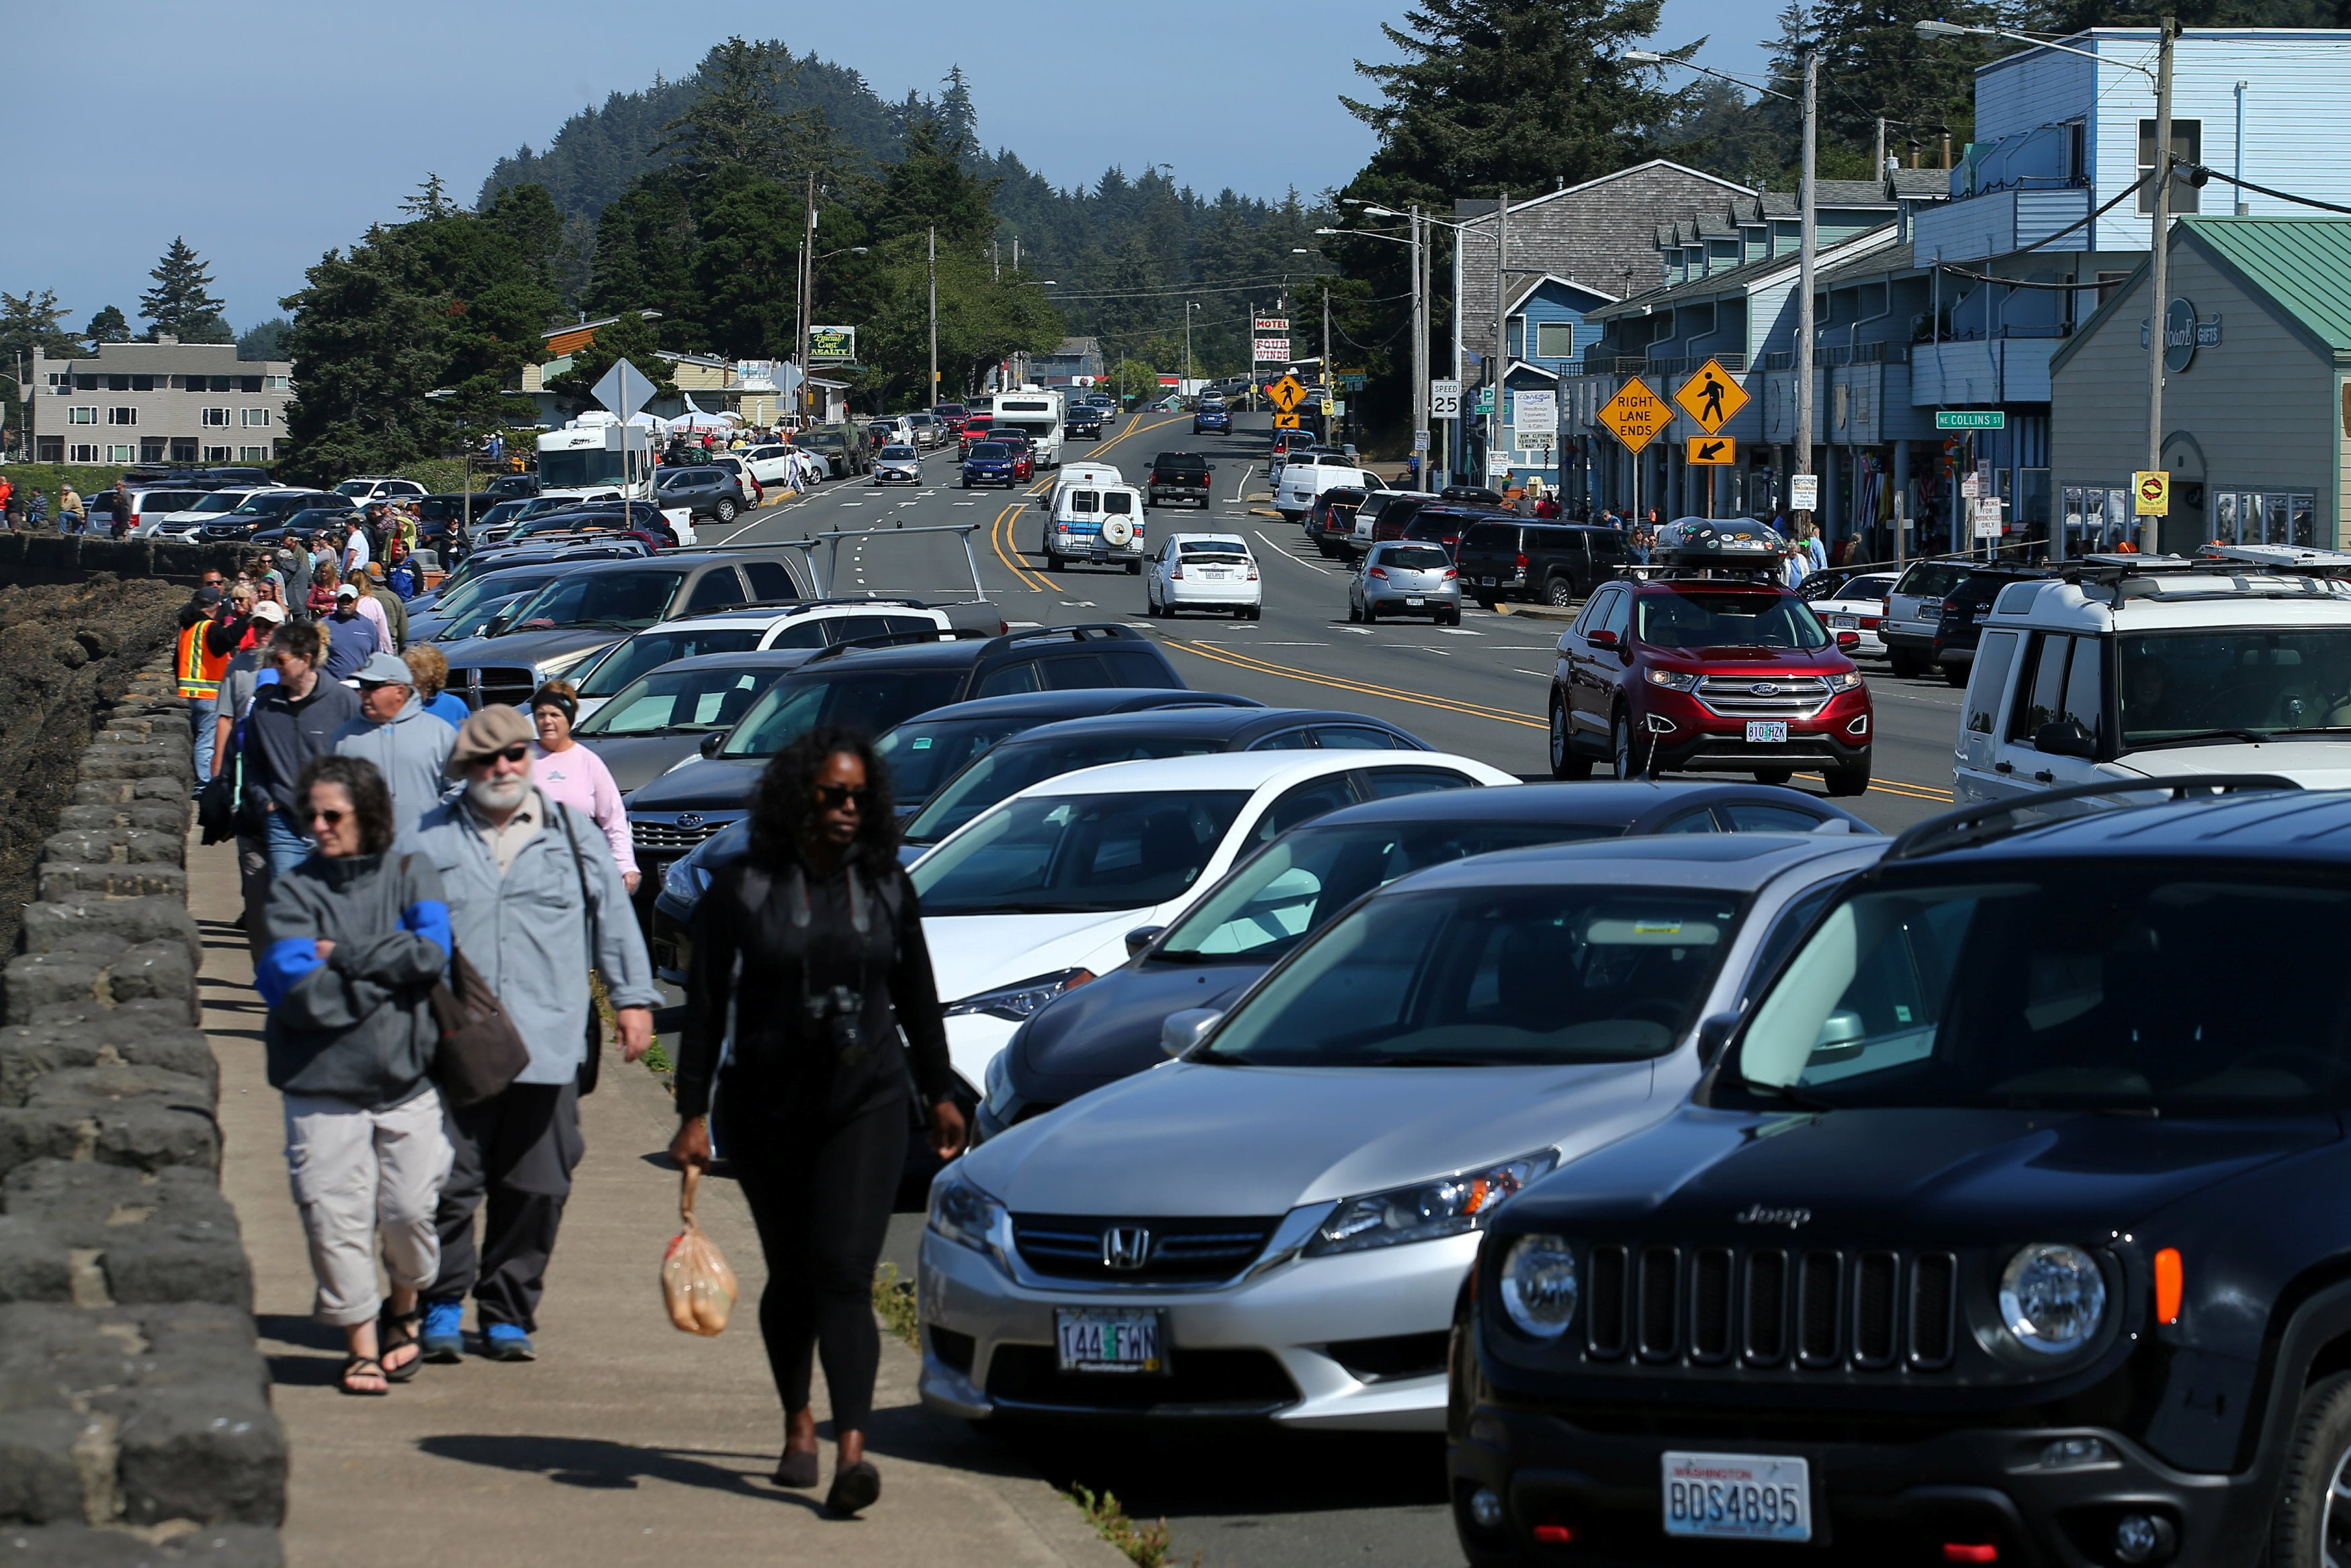 The small town of Depoe Bay prepares for the coming Solar Eclipse